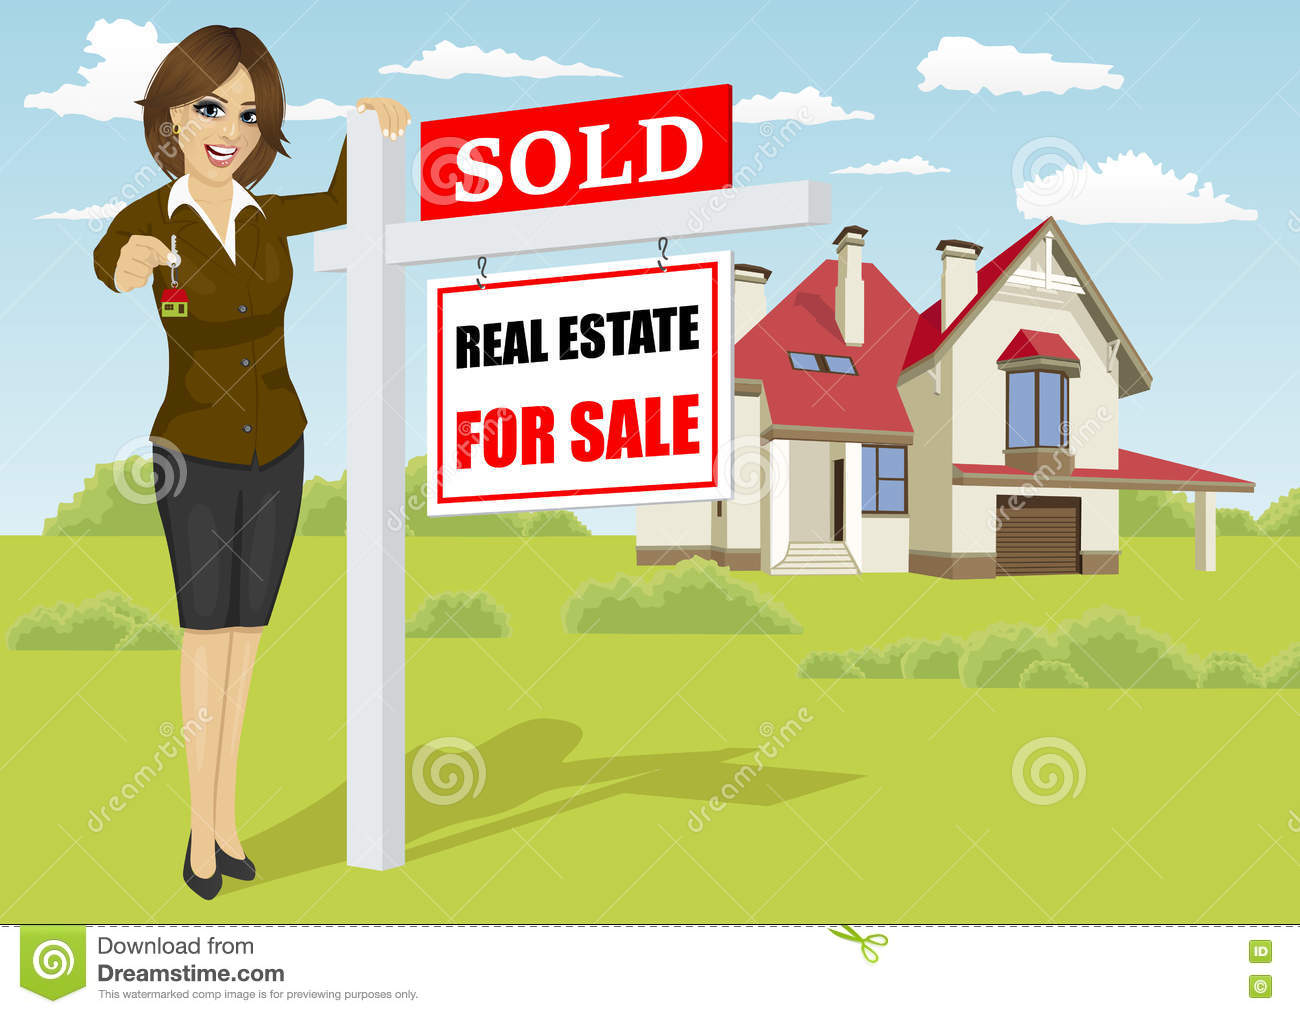 female-real-estate-agent-standing-next-to-sold-sale-sign-front-classic-cottage-73966653.jpg